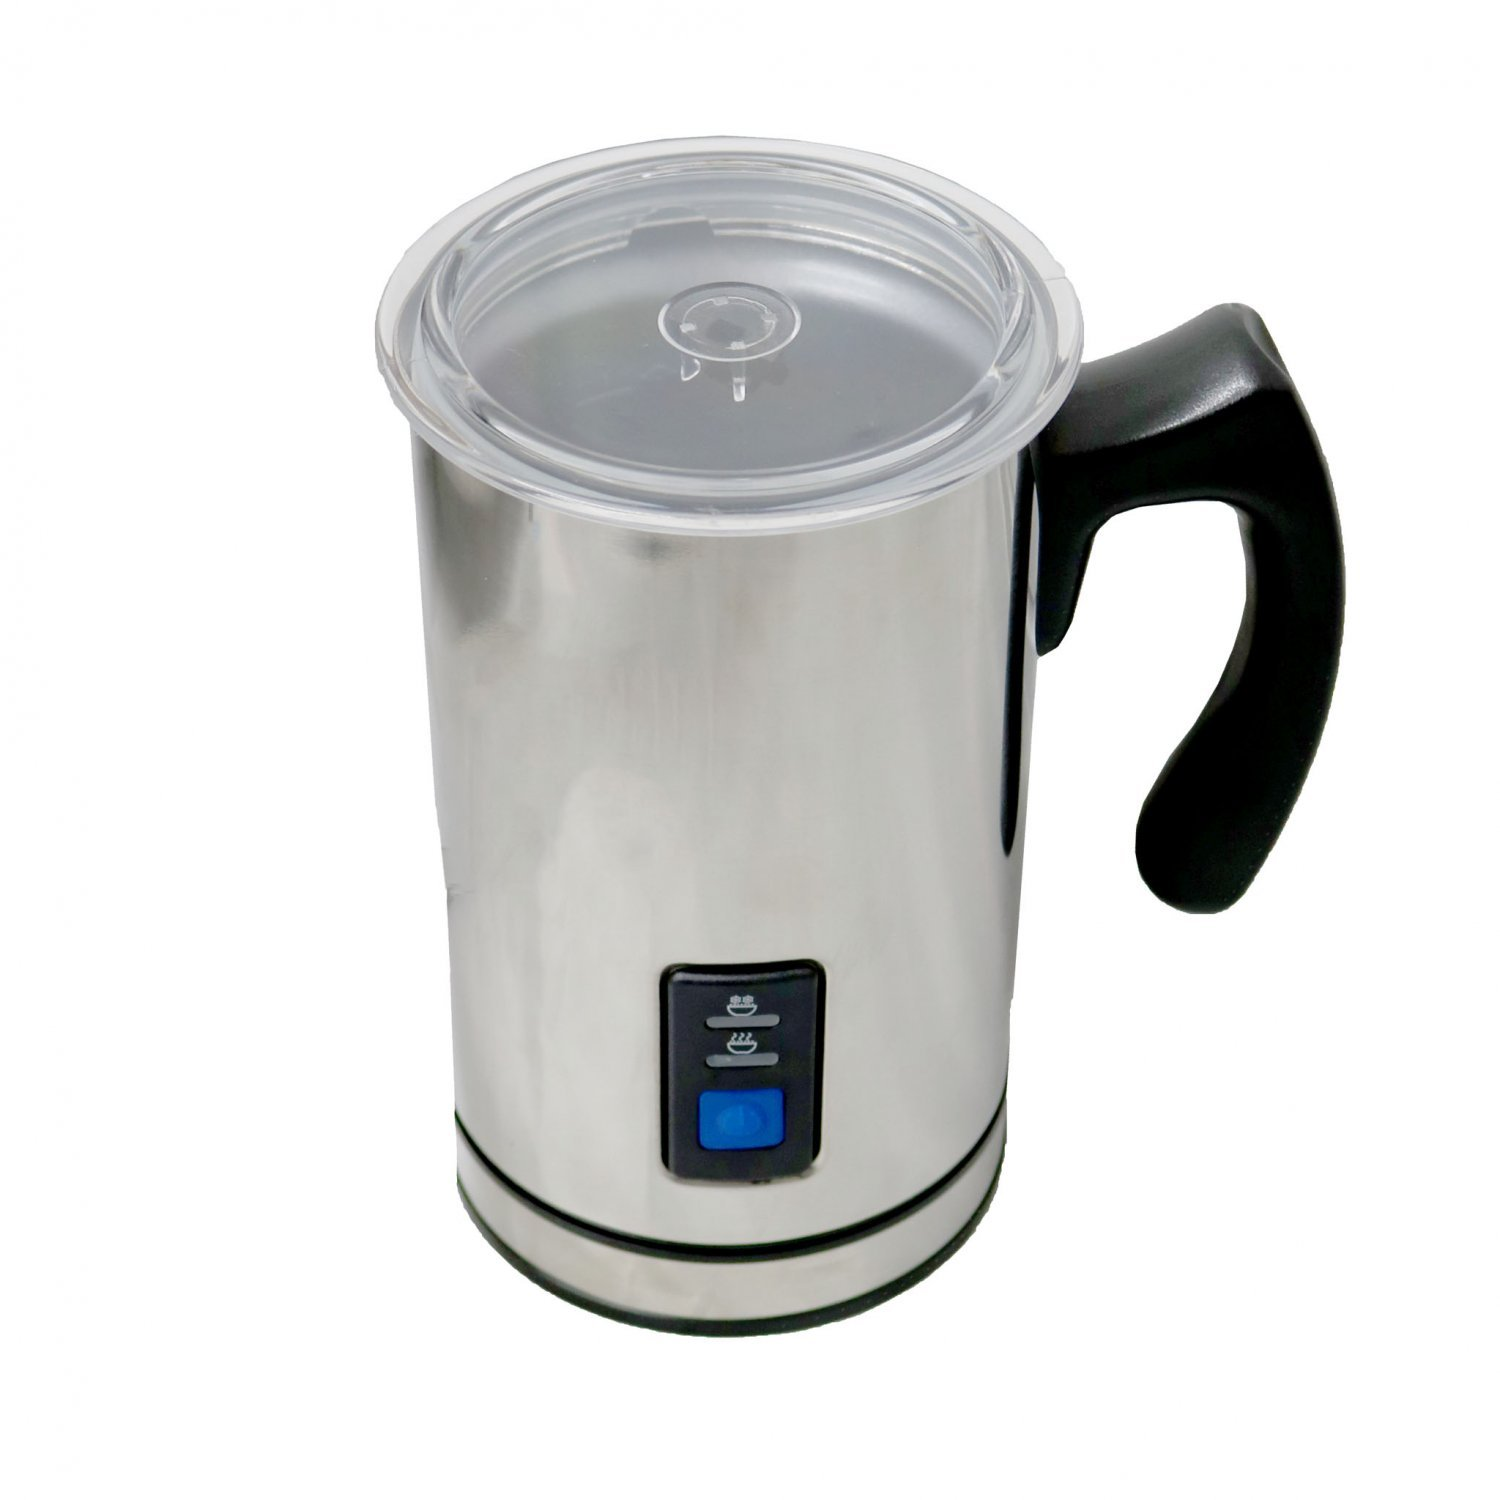 New Stainless Steel Electric Milk Frother And Warmer Coffee